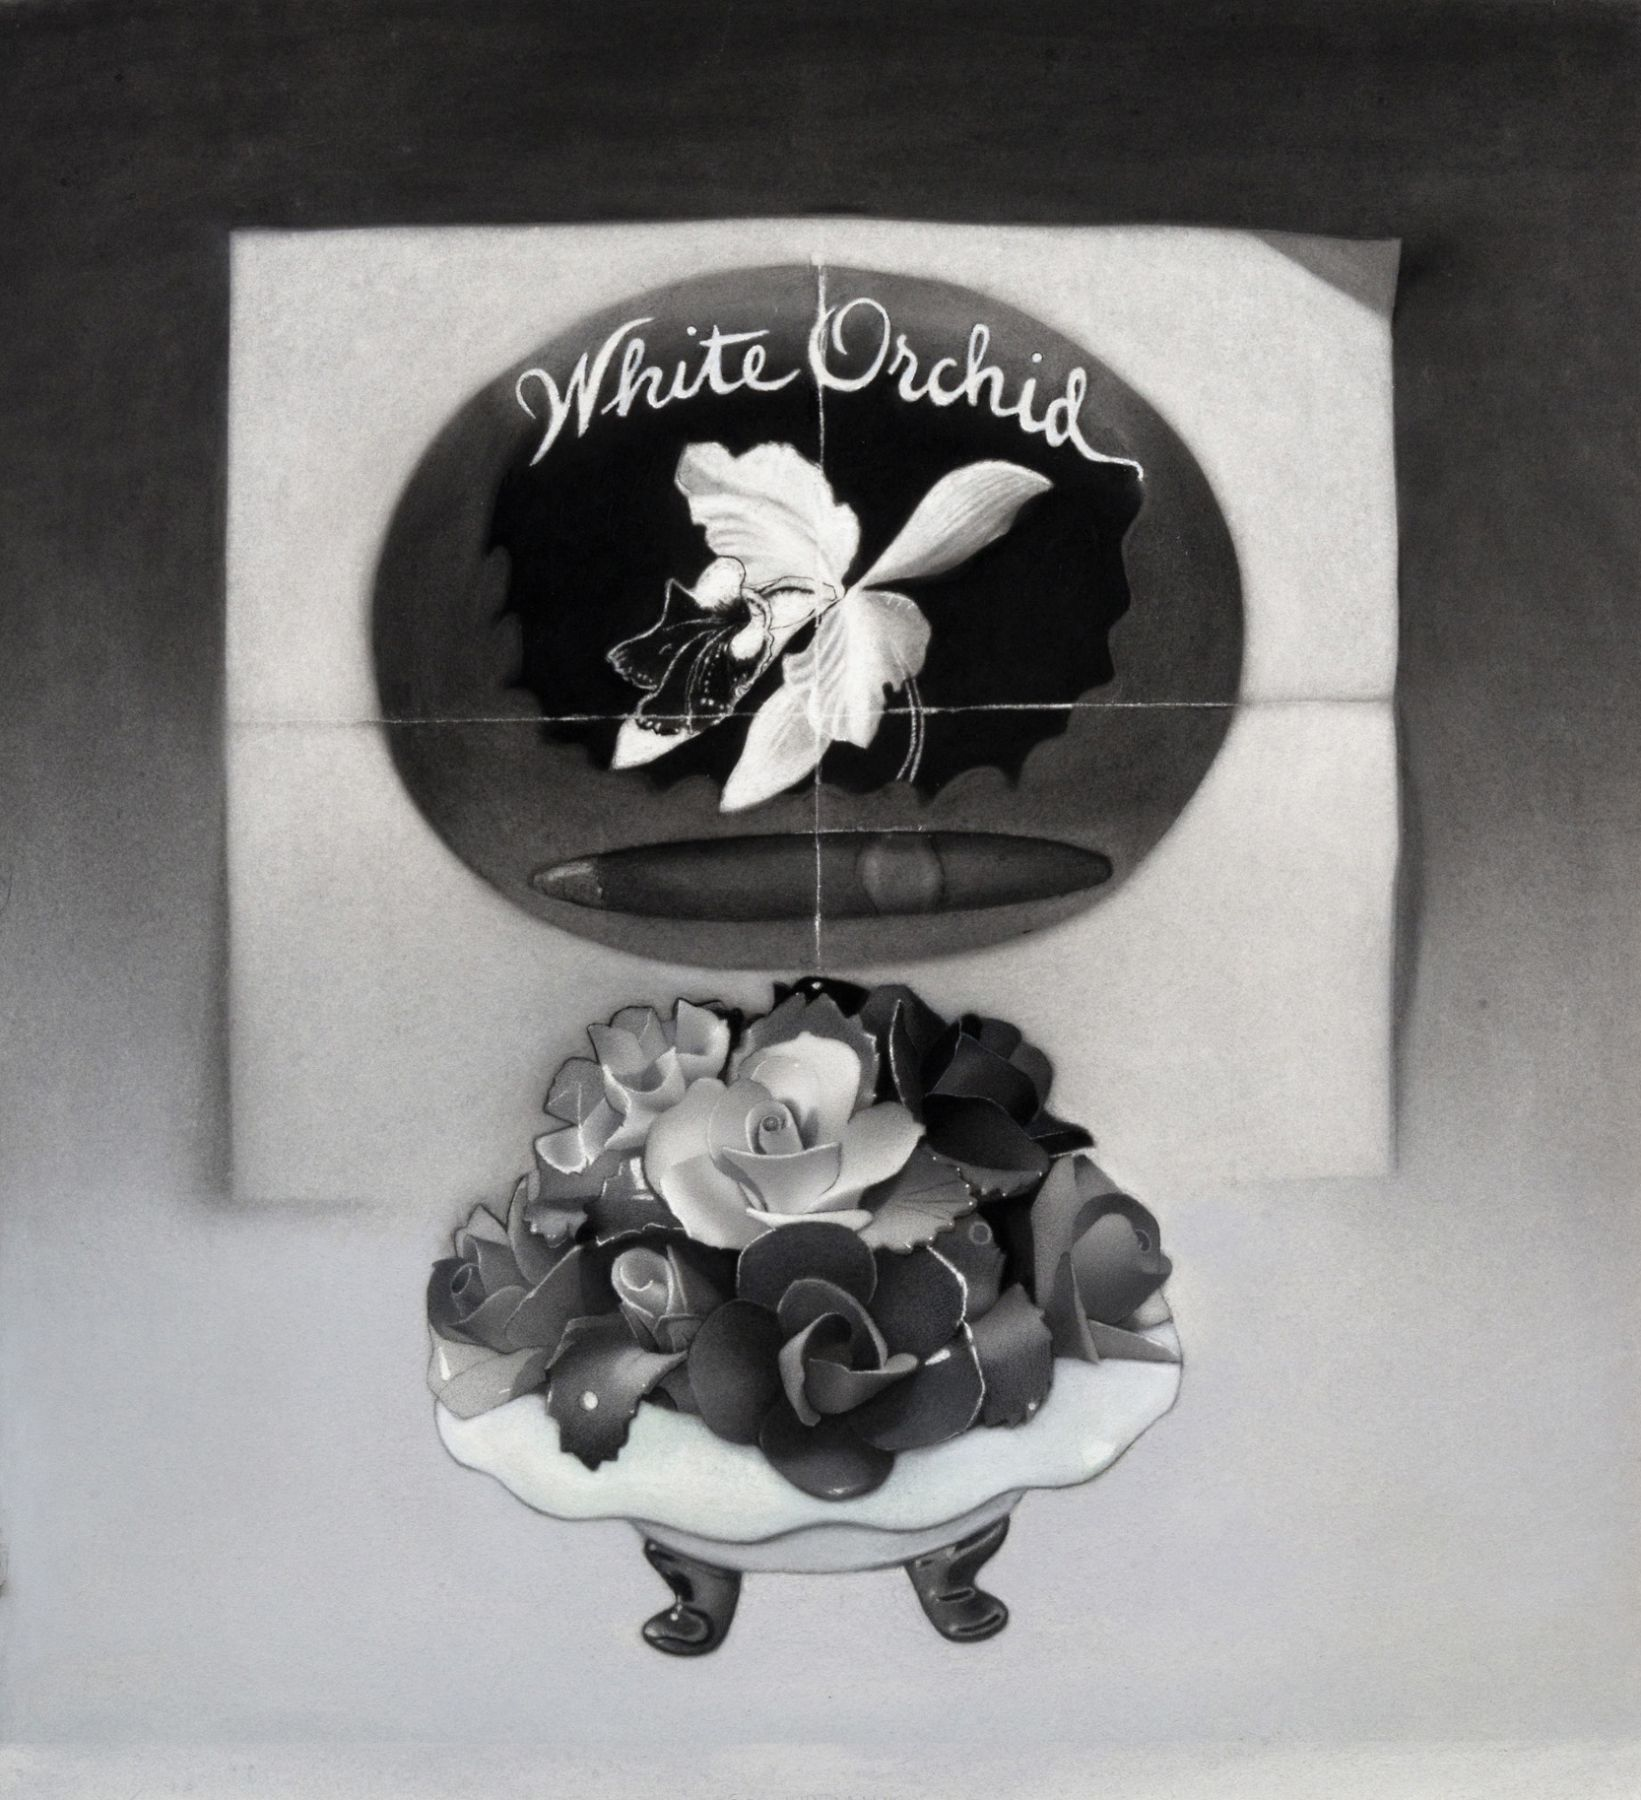 susan hauptman, Still Life, 2012, charcoal on paper, 28 x 31 1/2 inches